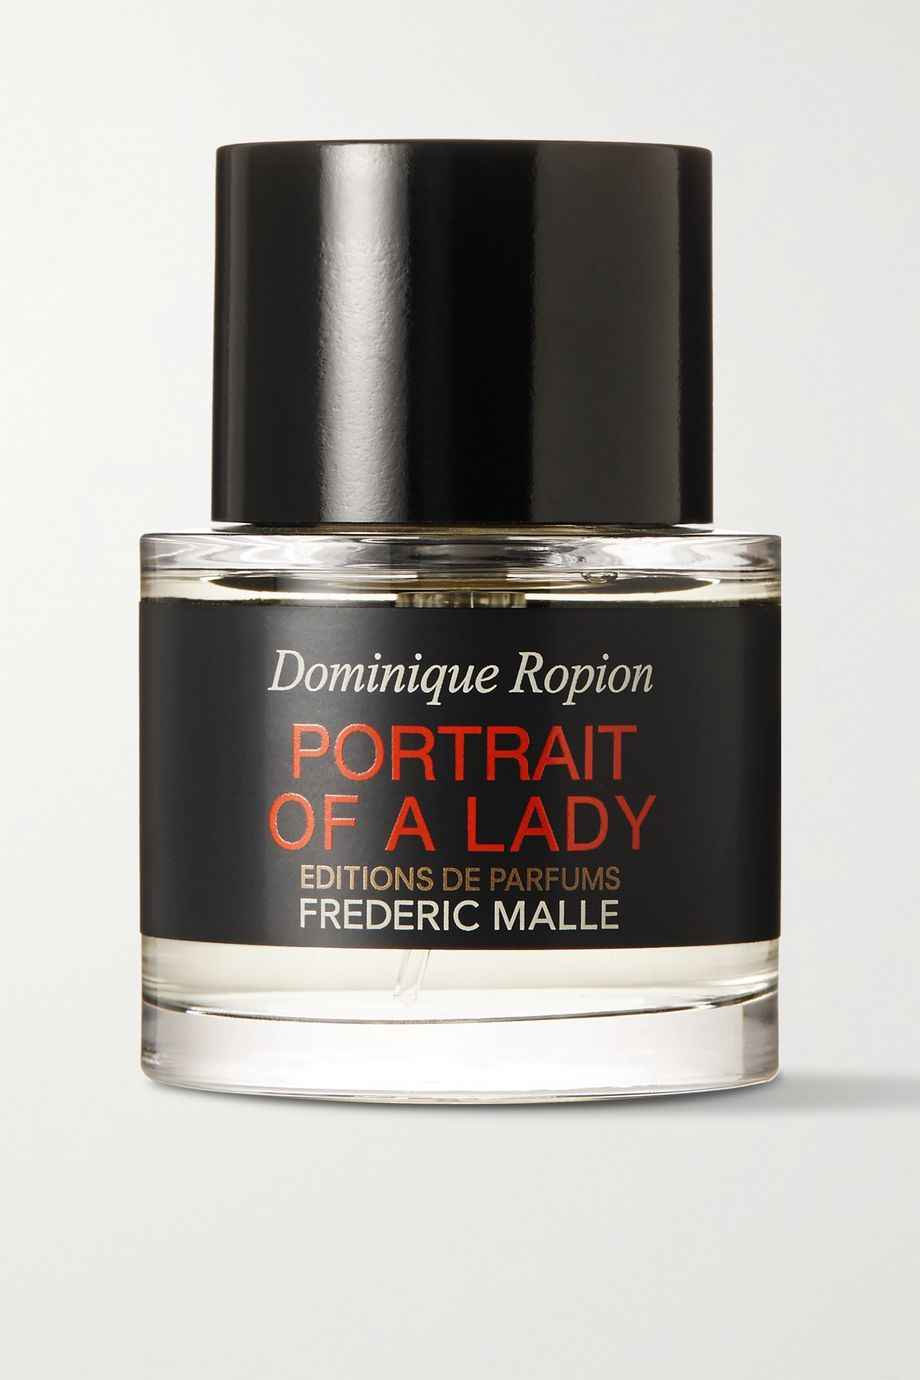 Frederic Malle Portrait of a Lady Eau de Parfum - Turkish Rose & Patchouli, 50ml